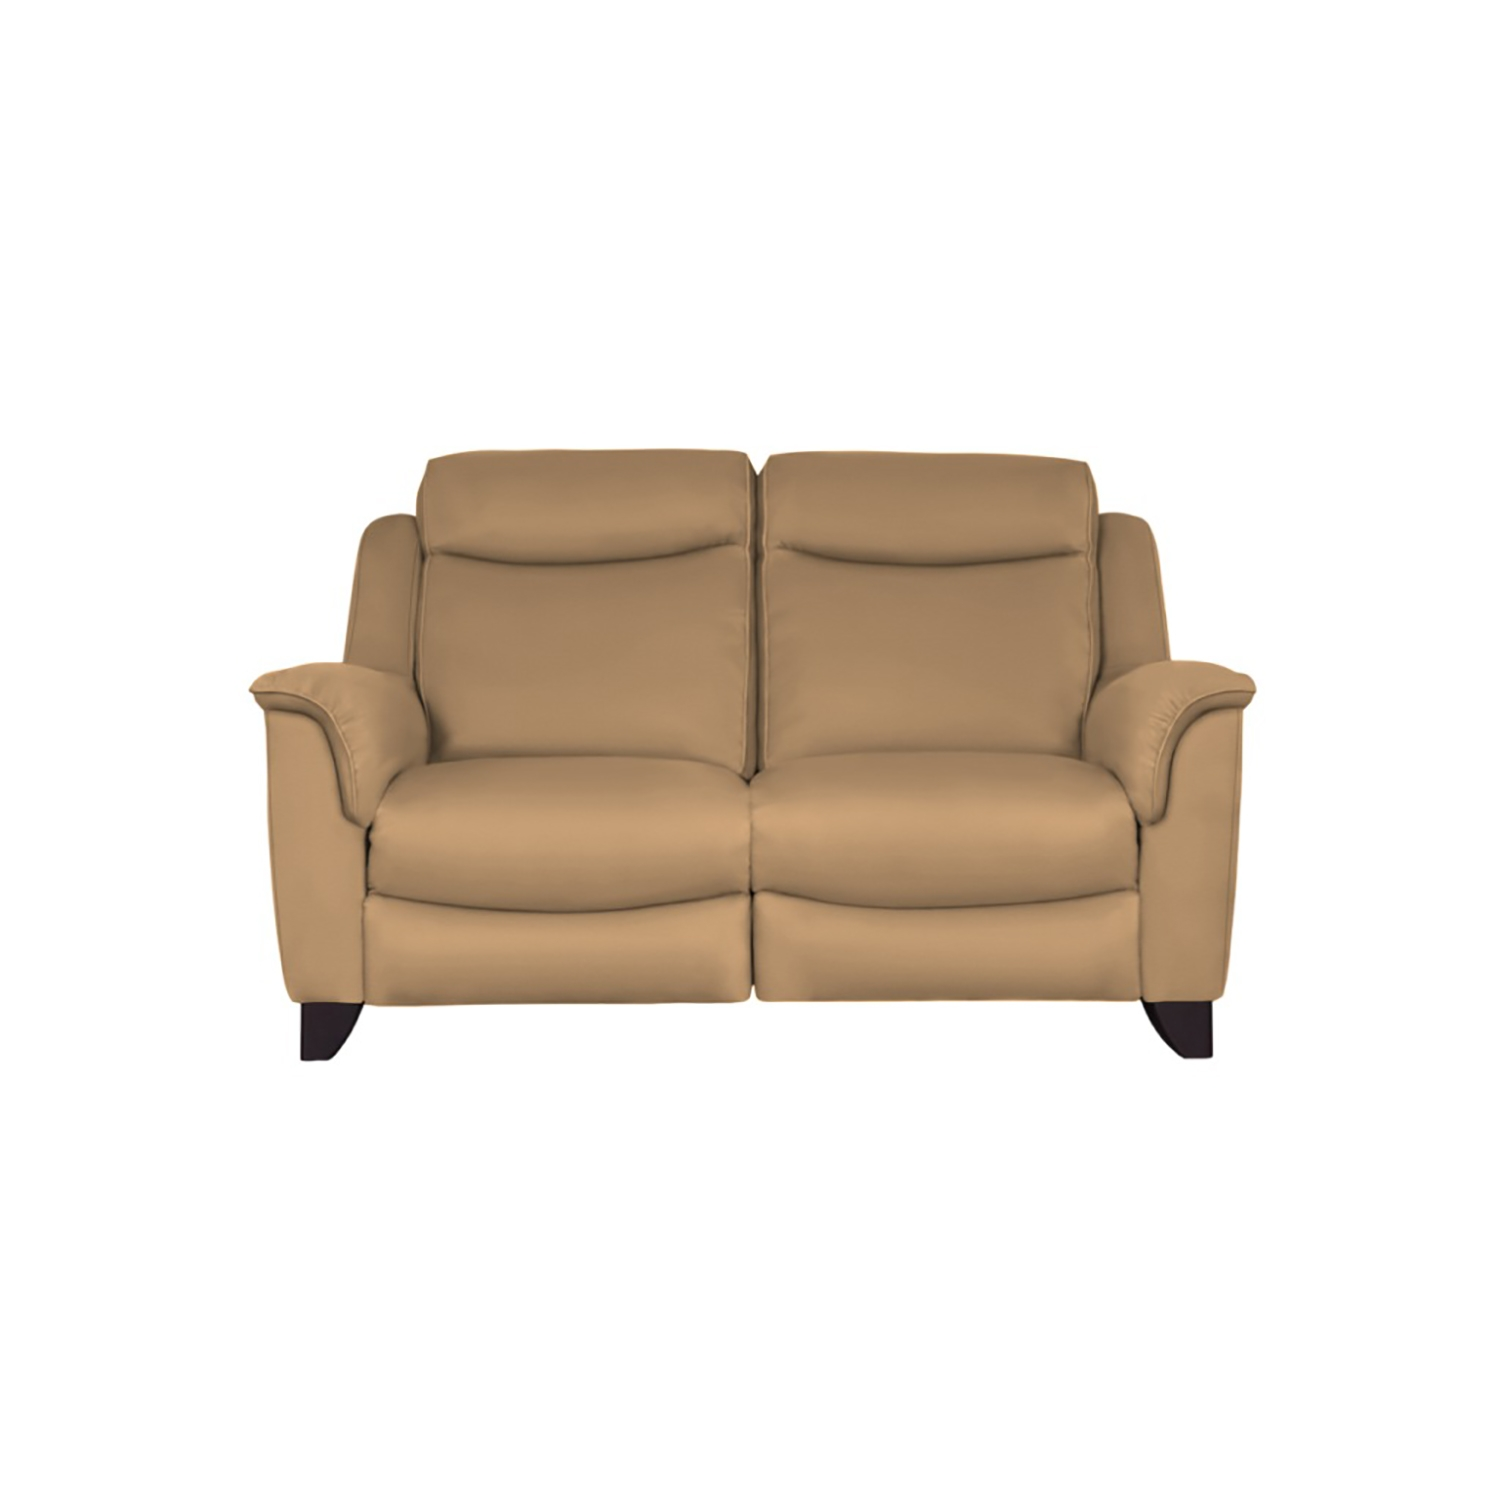 Image of Parker Knoll Manhattan 2 Seater Leather Sofa, Caramel